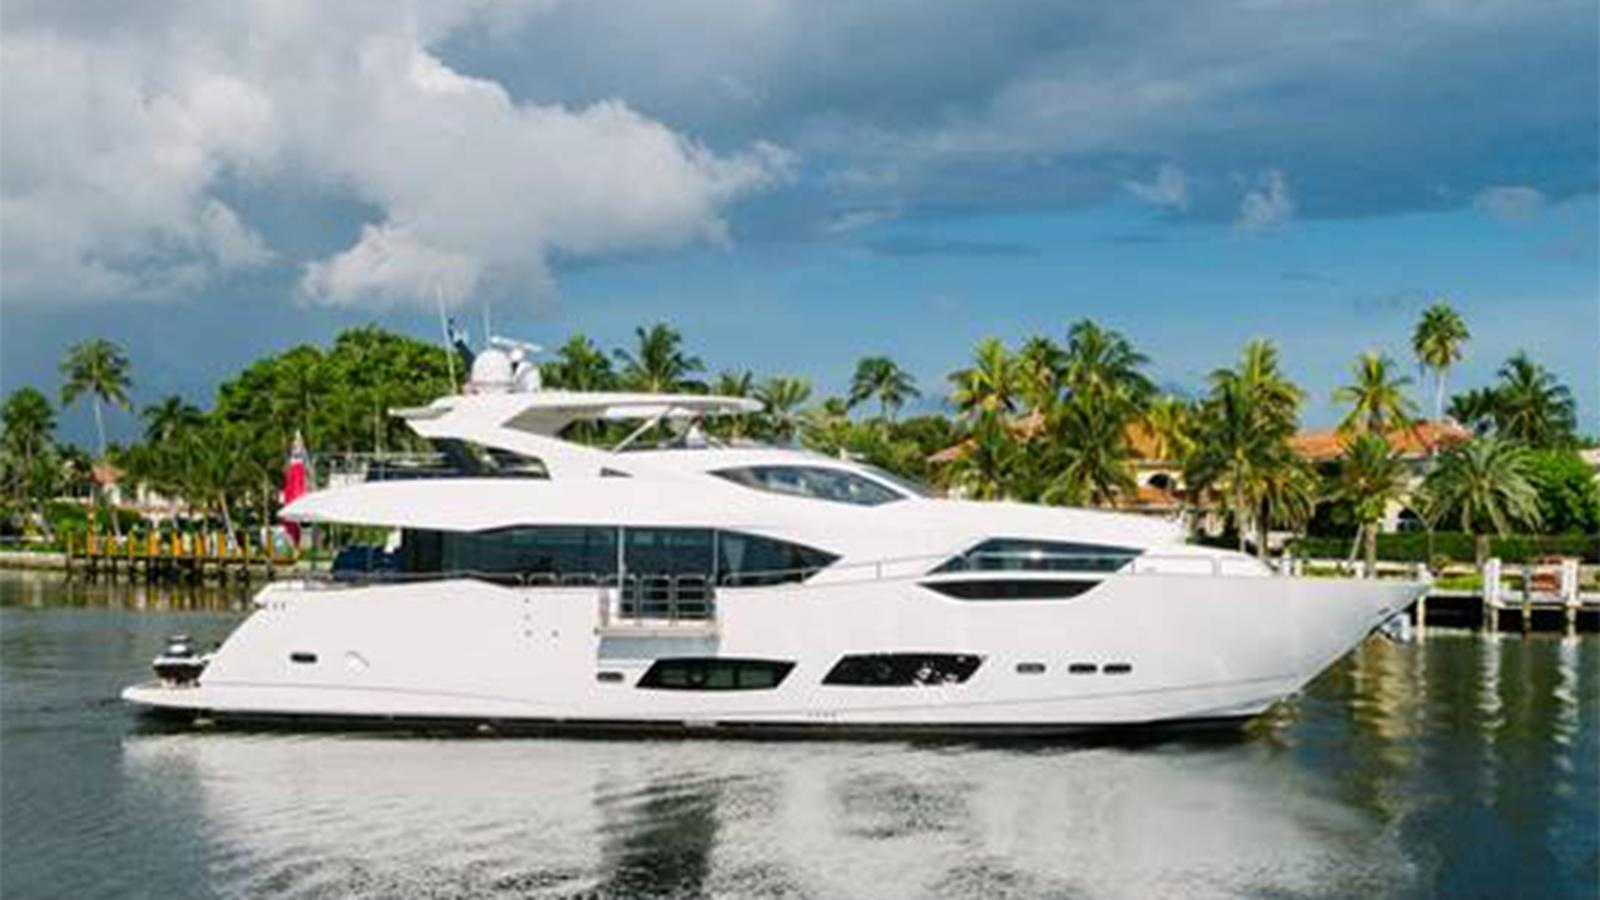 https//www.boatinternational.com/yachts/news/horizon,yachts